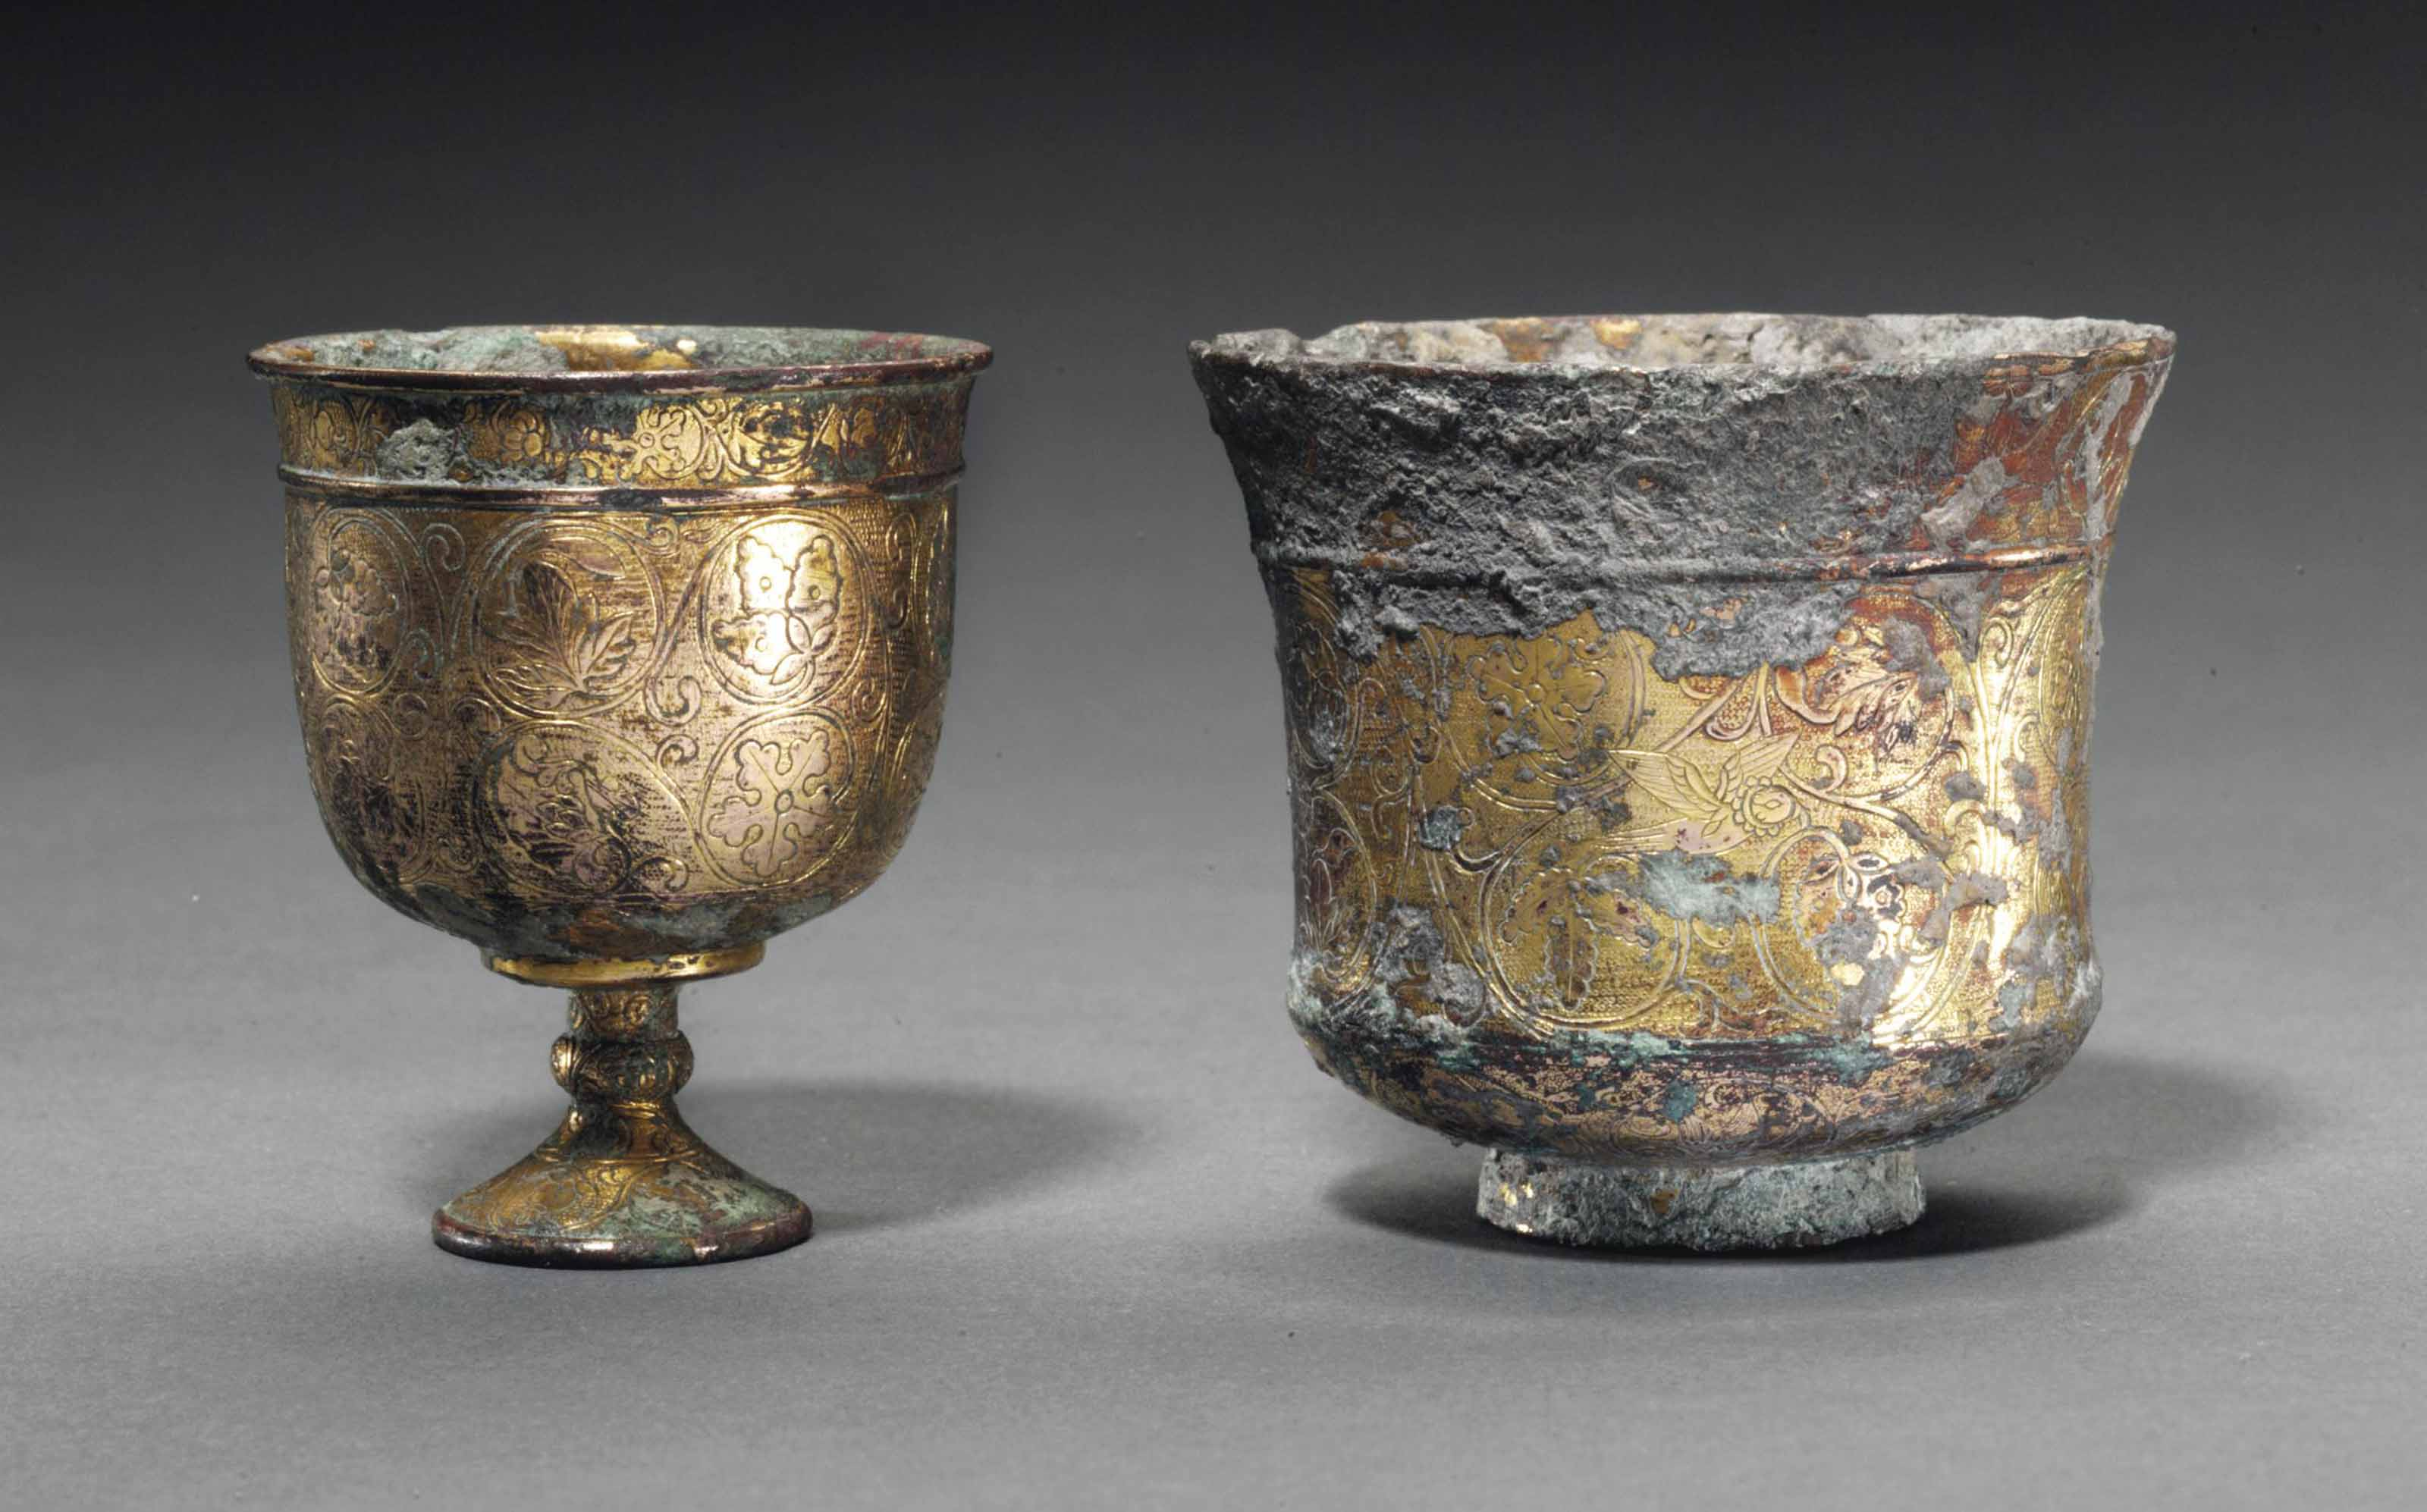 TWO GILT-BRONZE CUPS